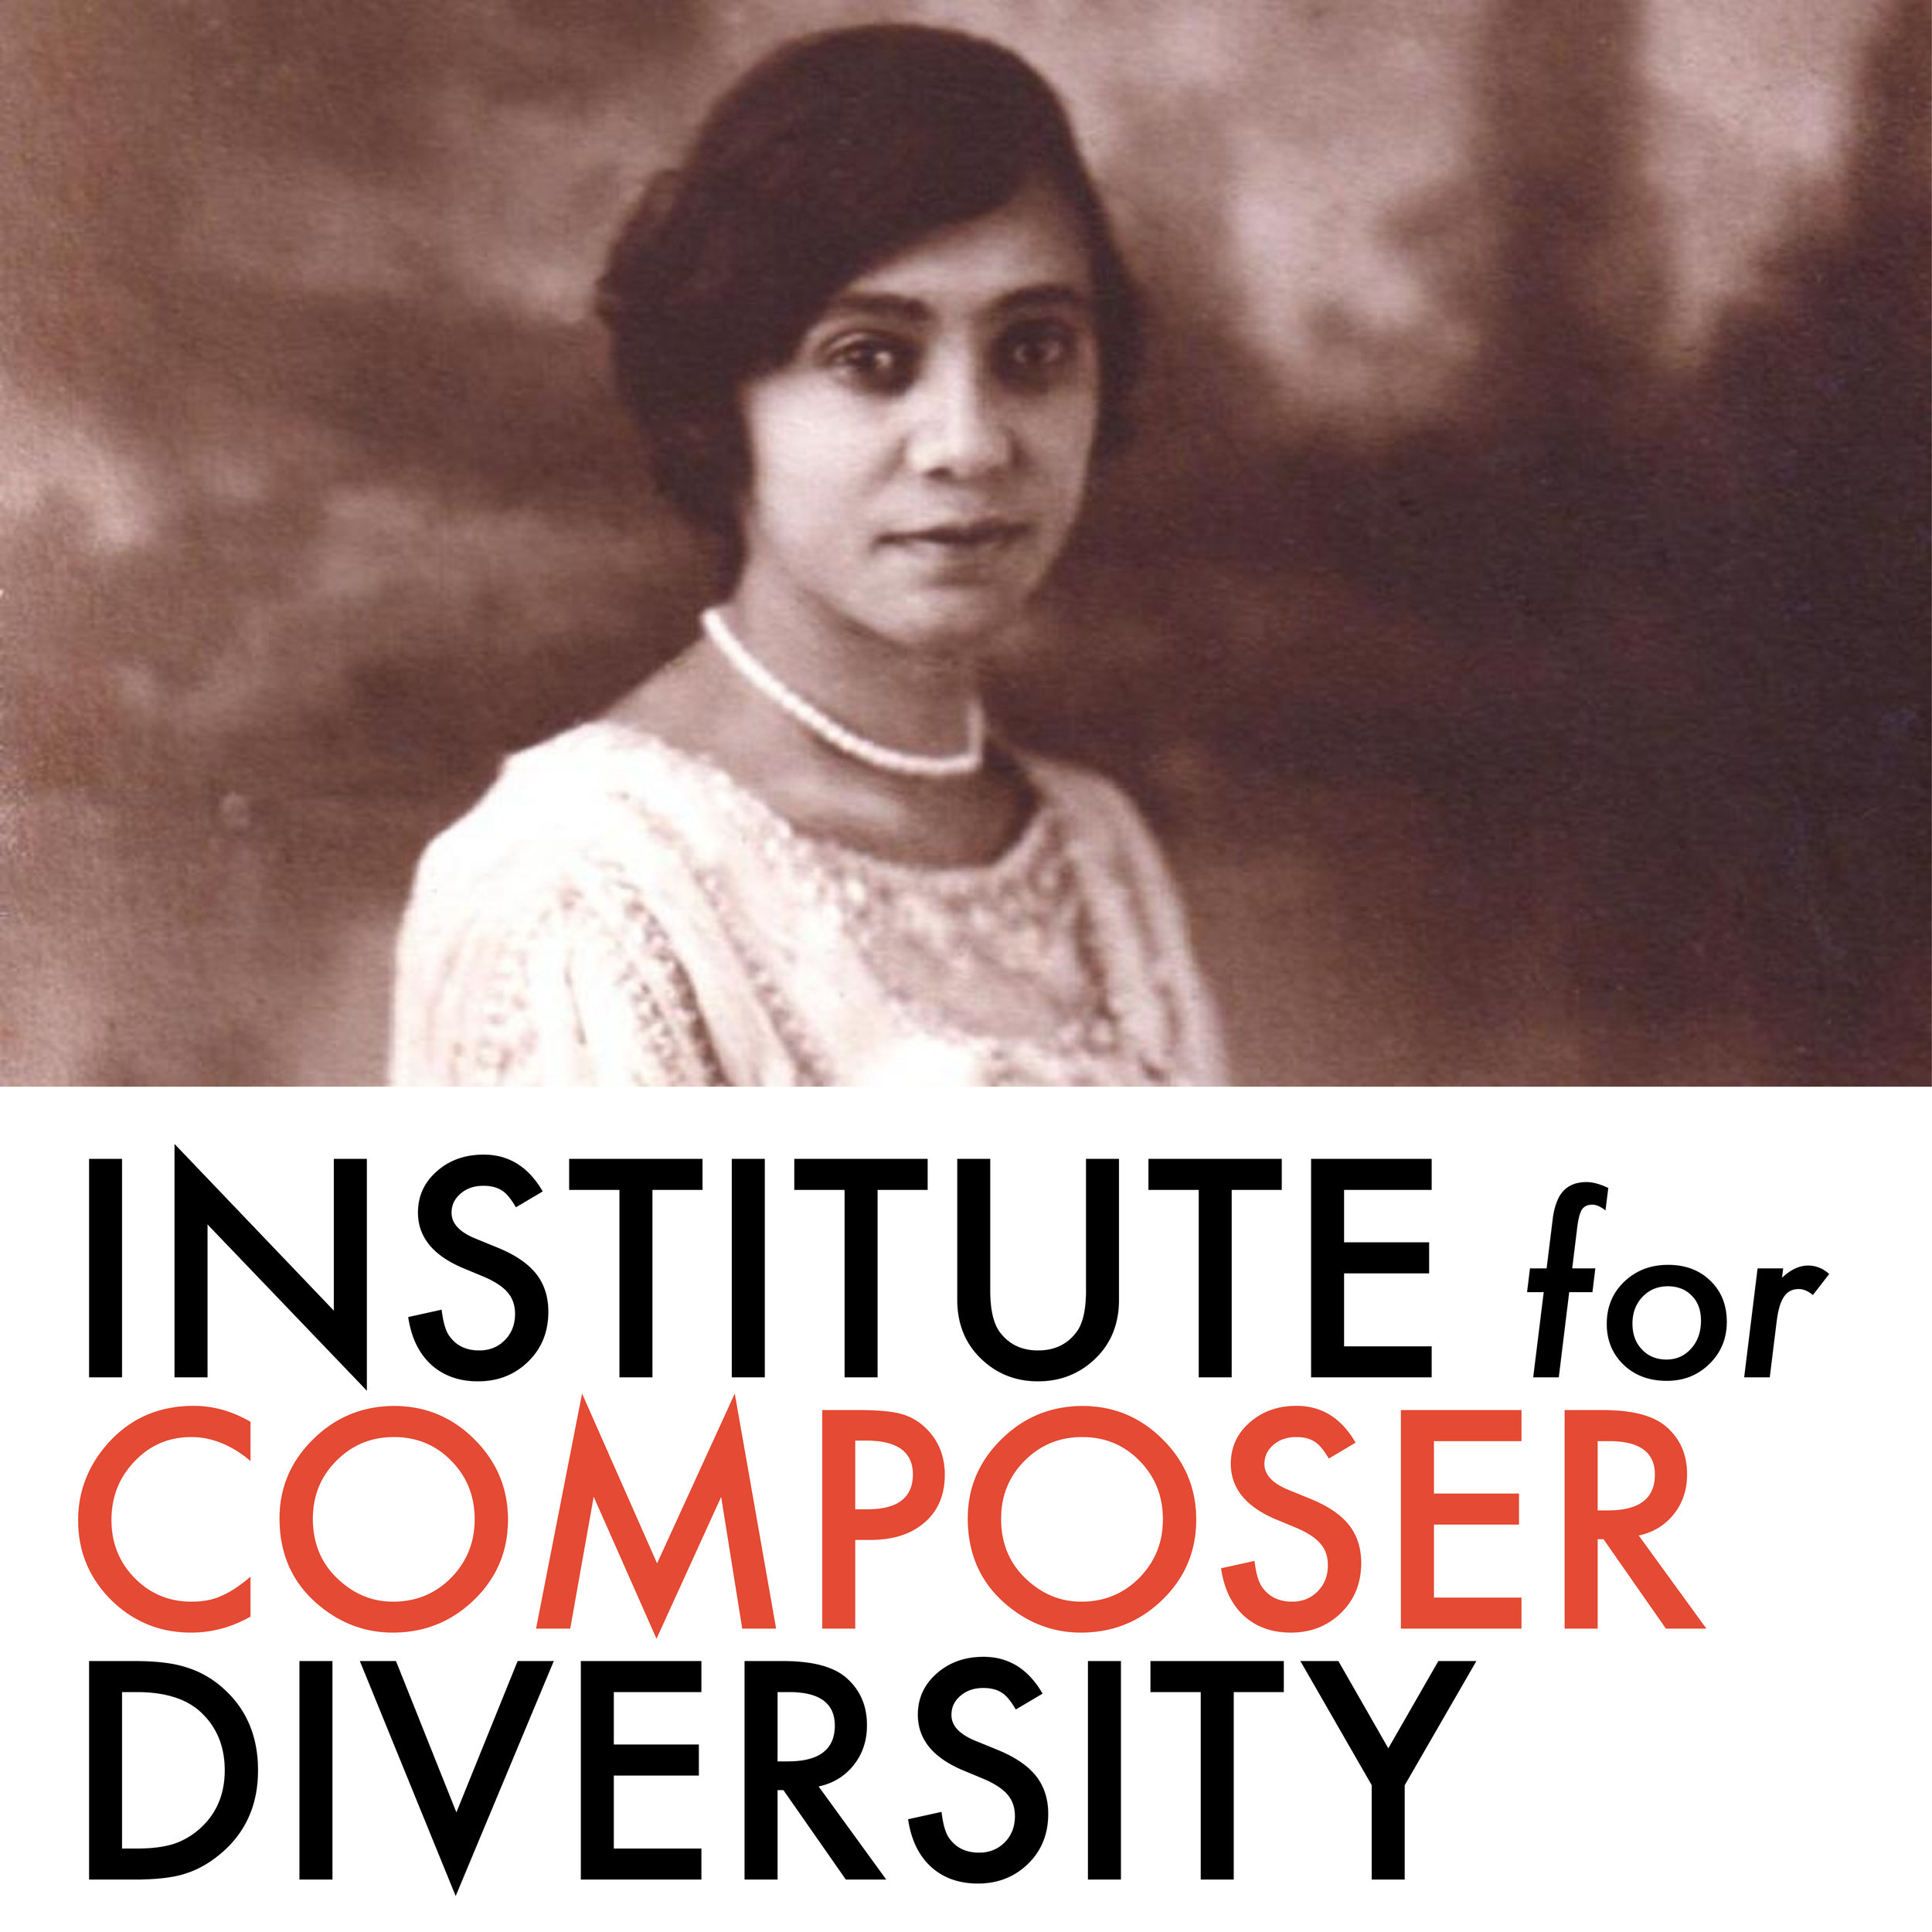 PANDORA: Pre-1970 Orchestral Music by Underrepresented Composers